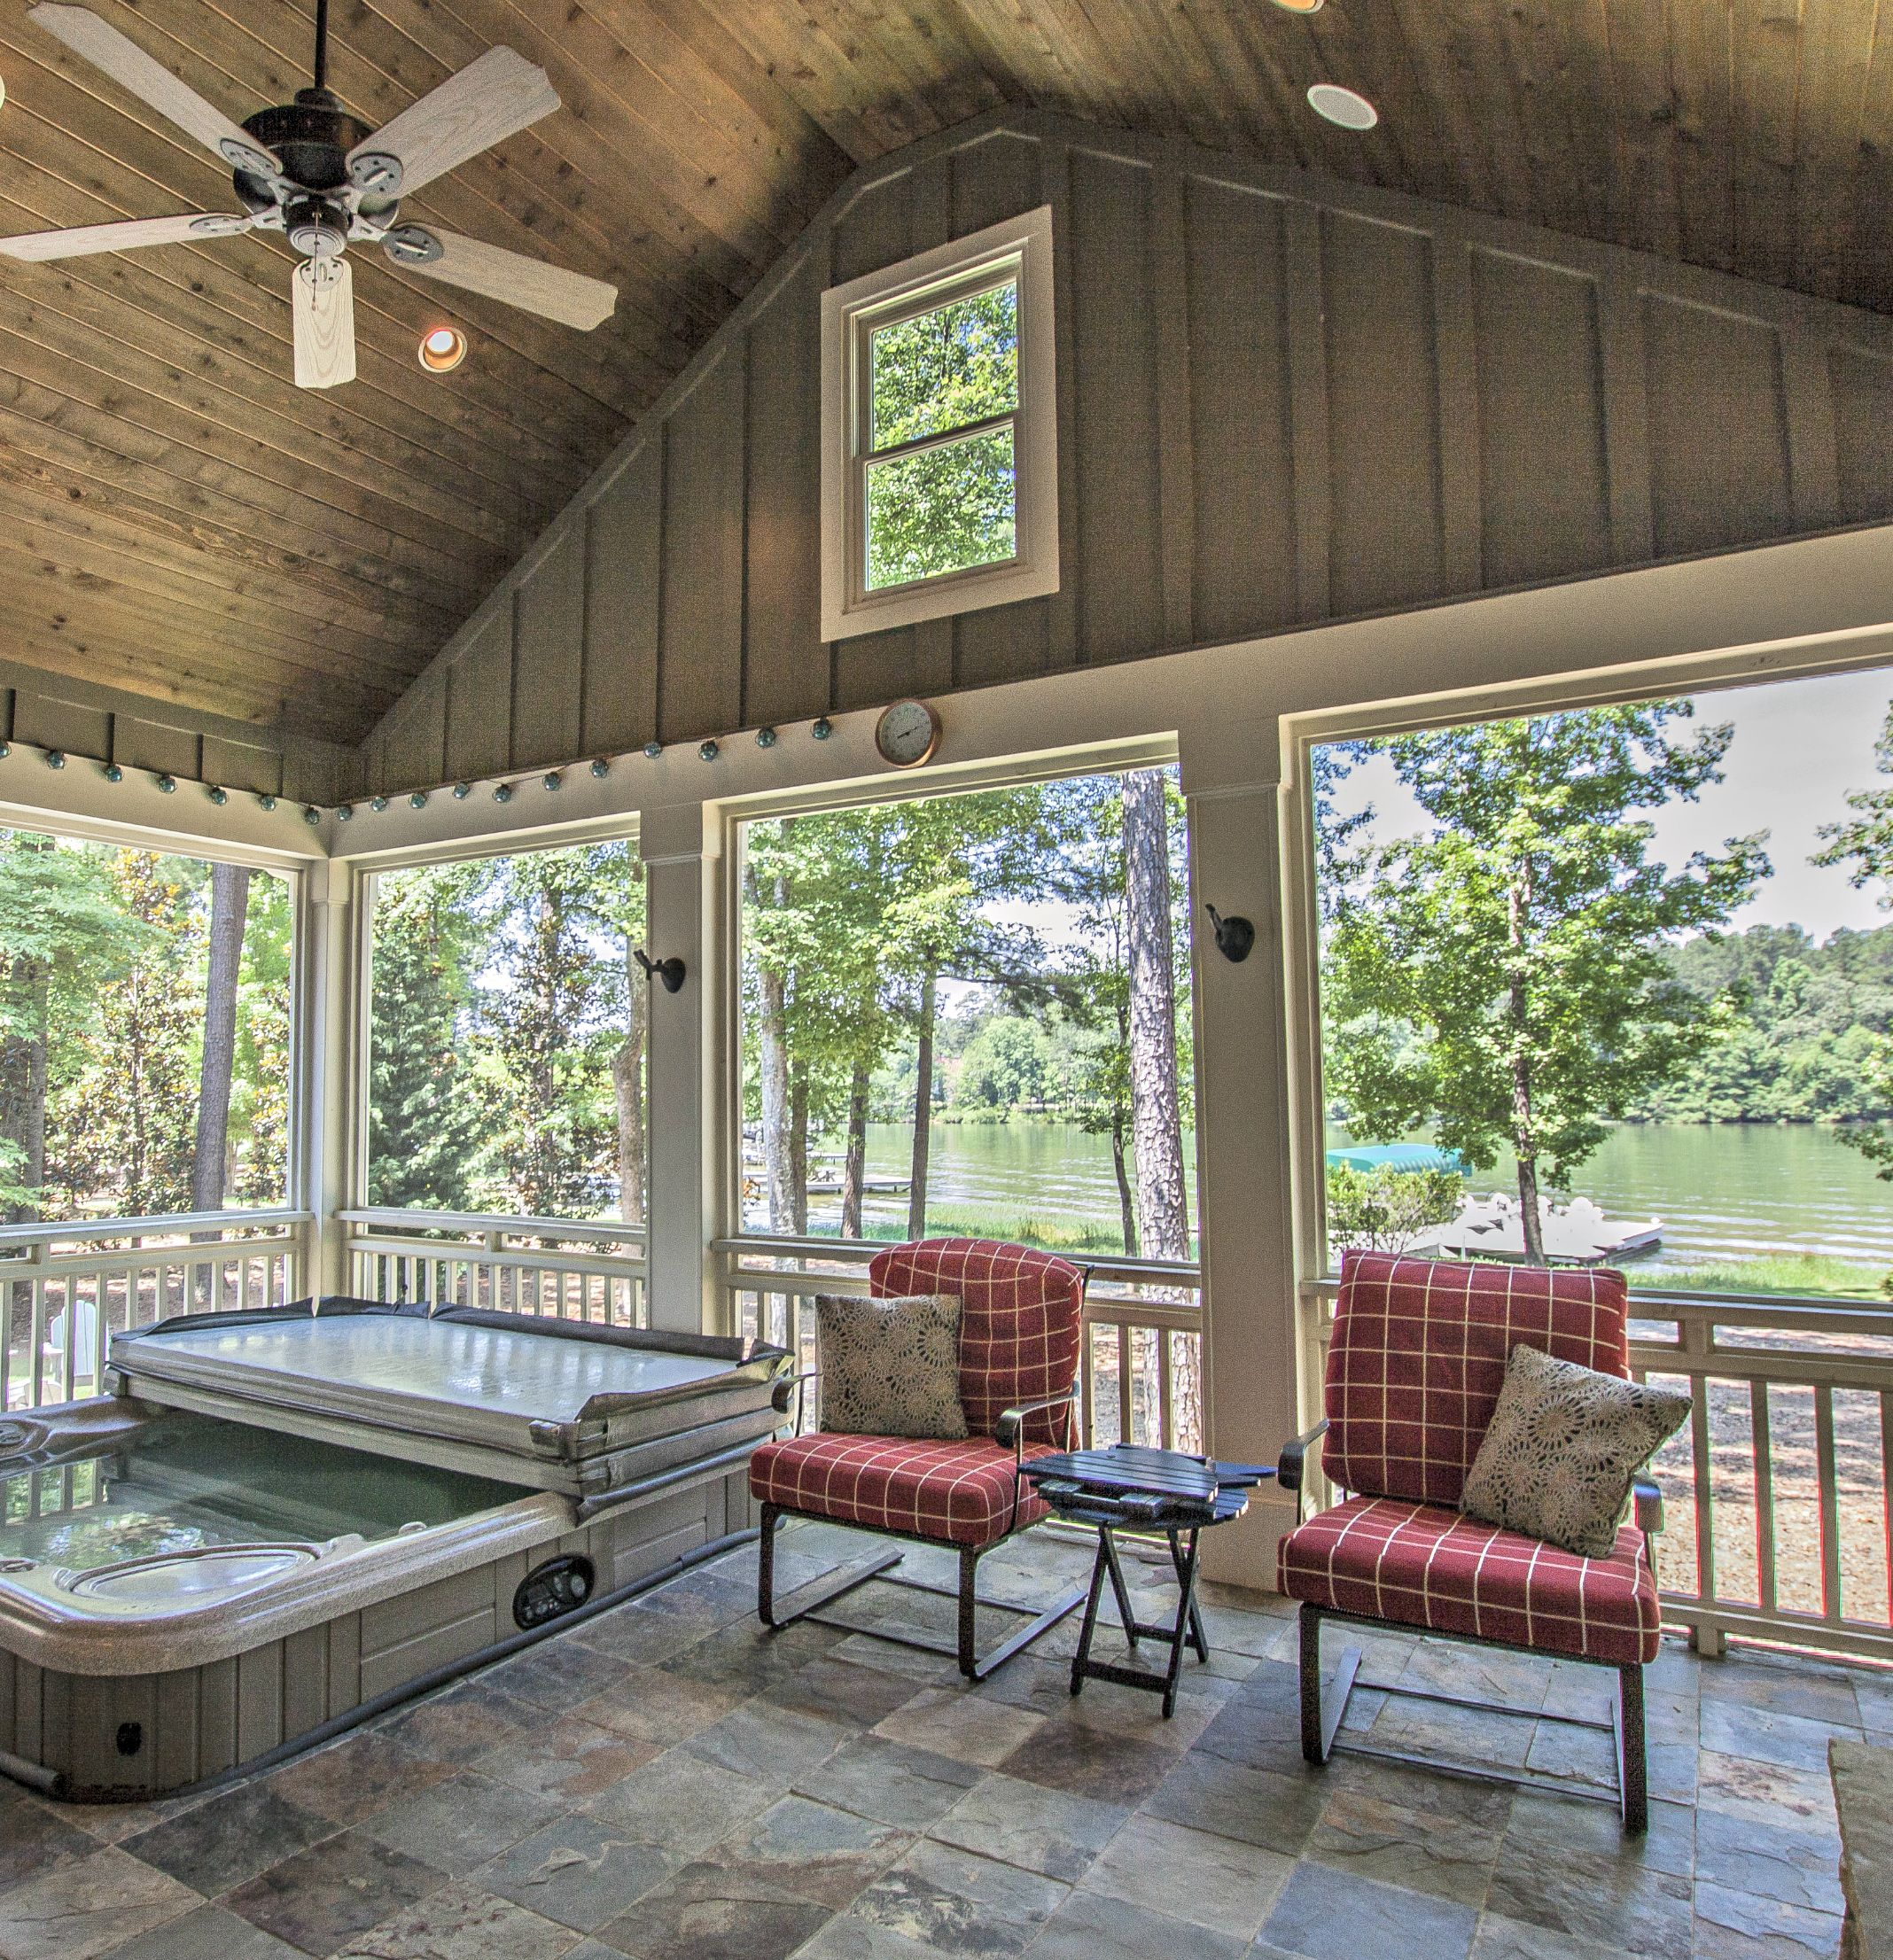 Lakeside Screened Porch With Fireplace, Hot Tub, Slate Floors And